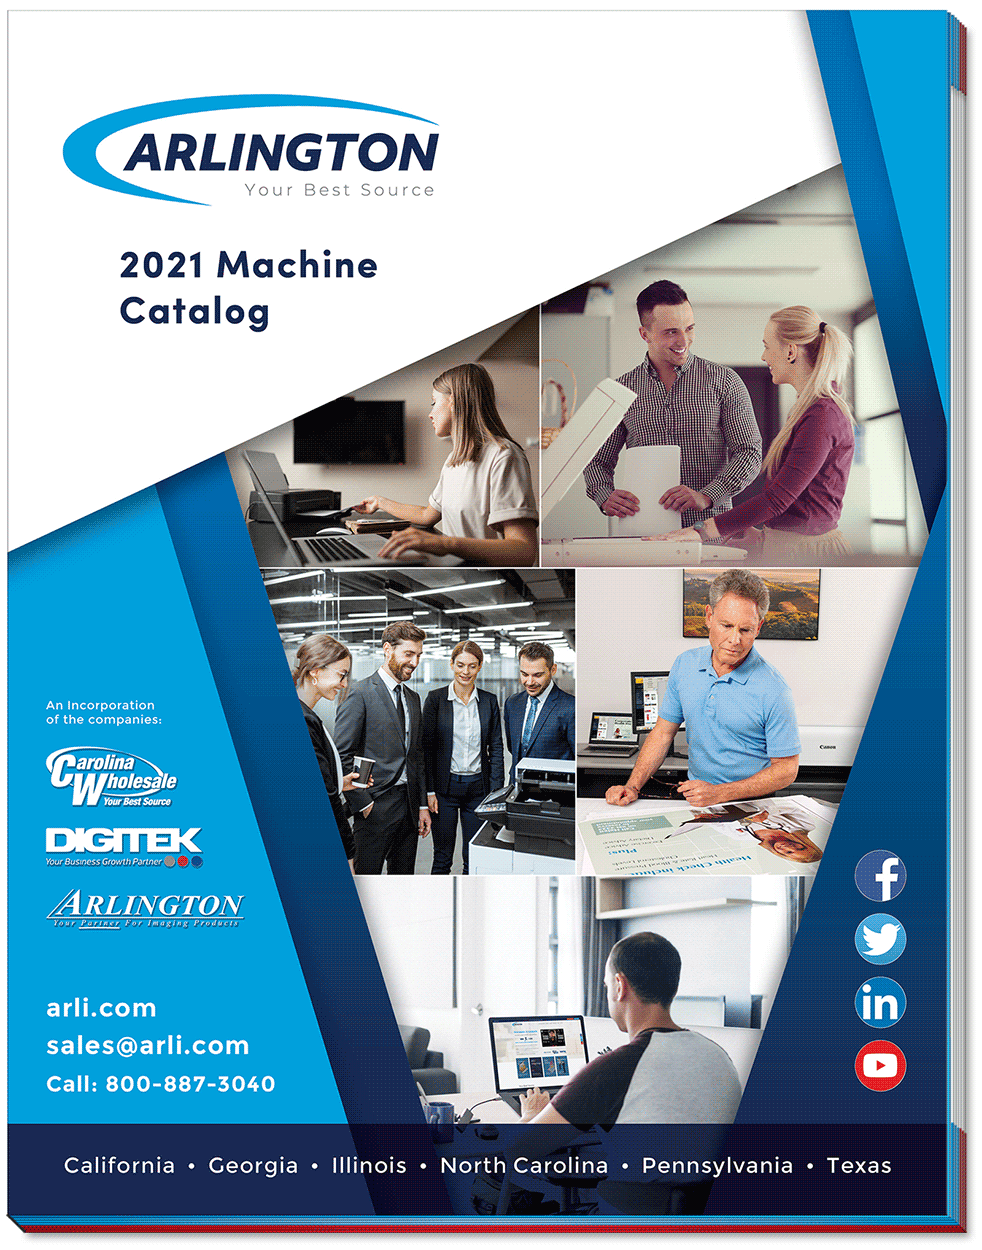 2021 ARLINGTON Machine Catalog